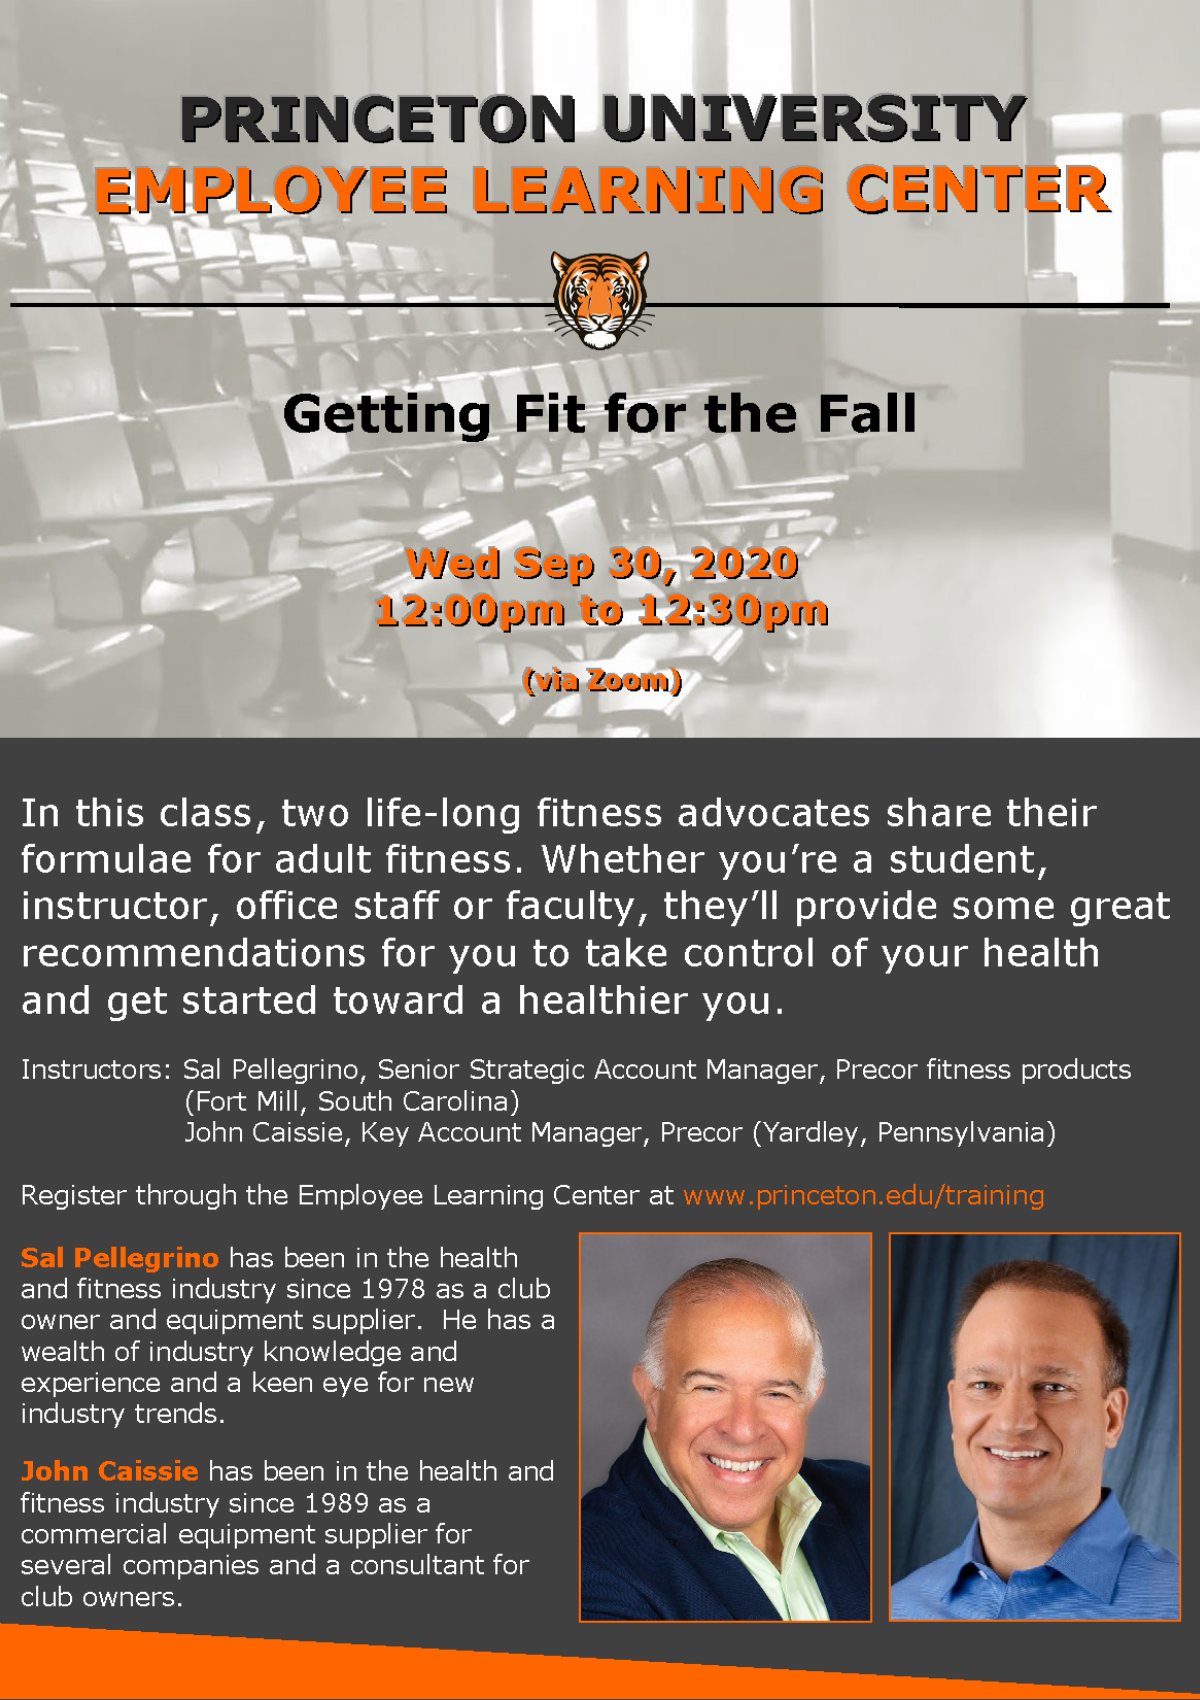 Employee Learning Center: Getting Fit for the FAll. Wed September 30, 2020 12pm-12:30pm via Zoom